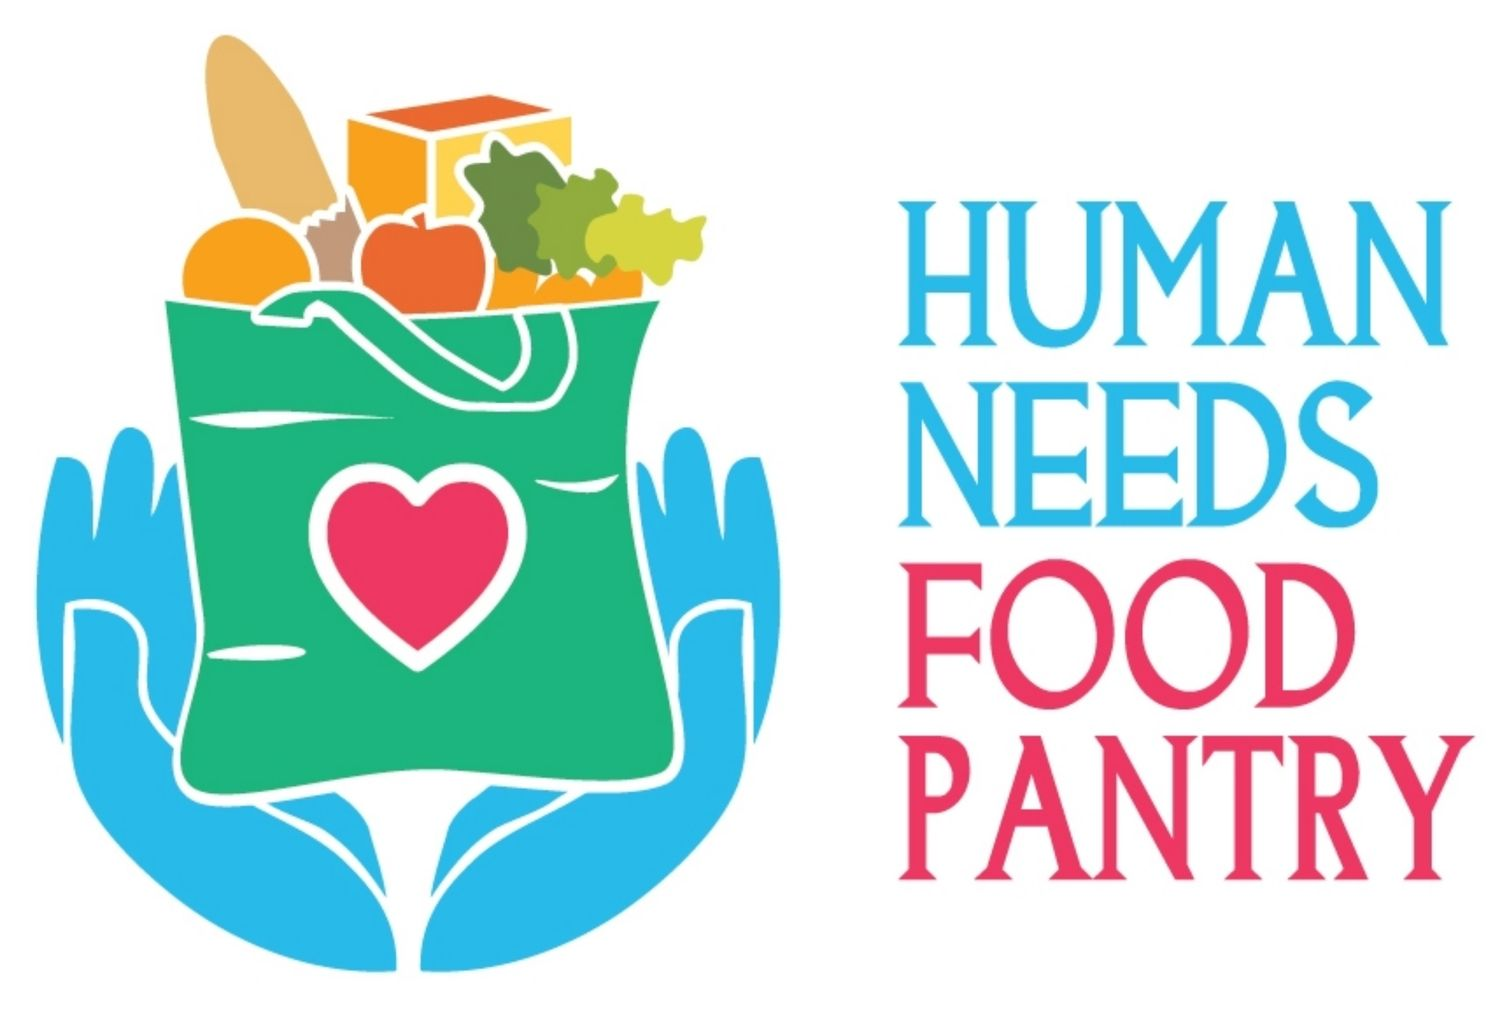 Human Needs Food Pantry